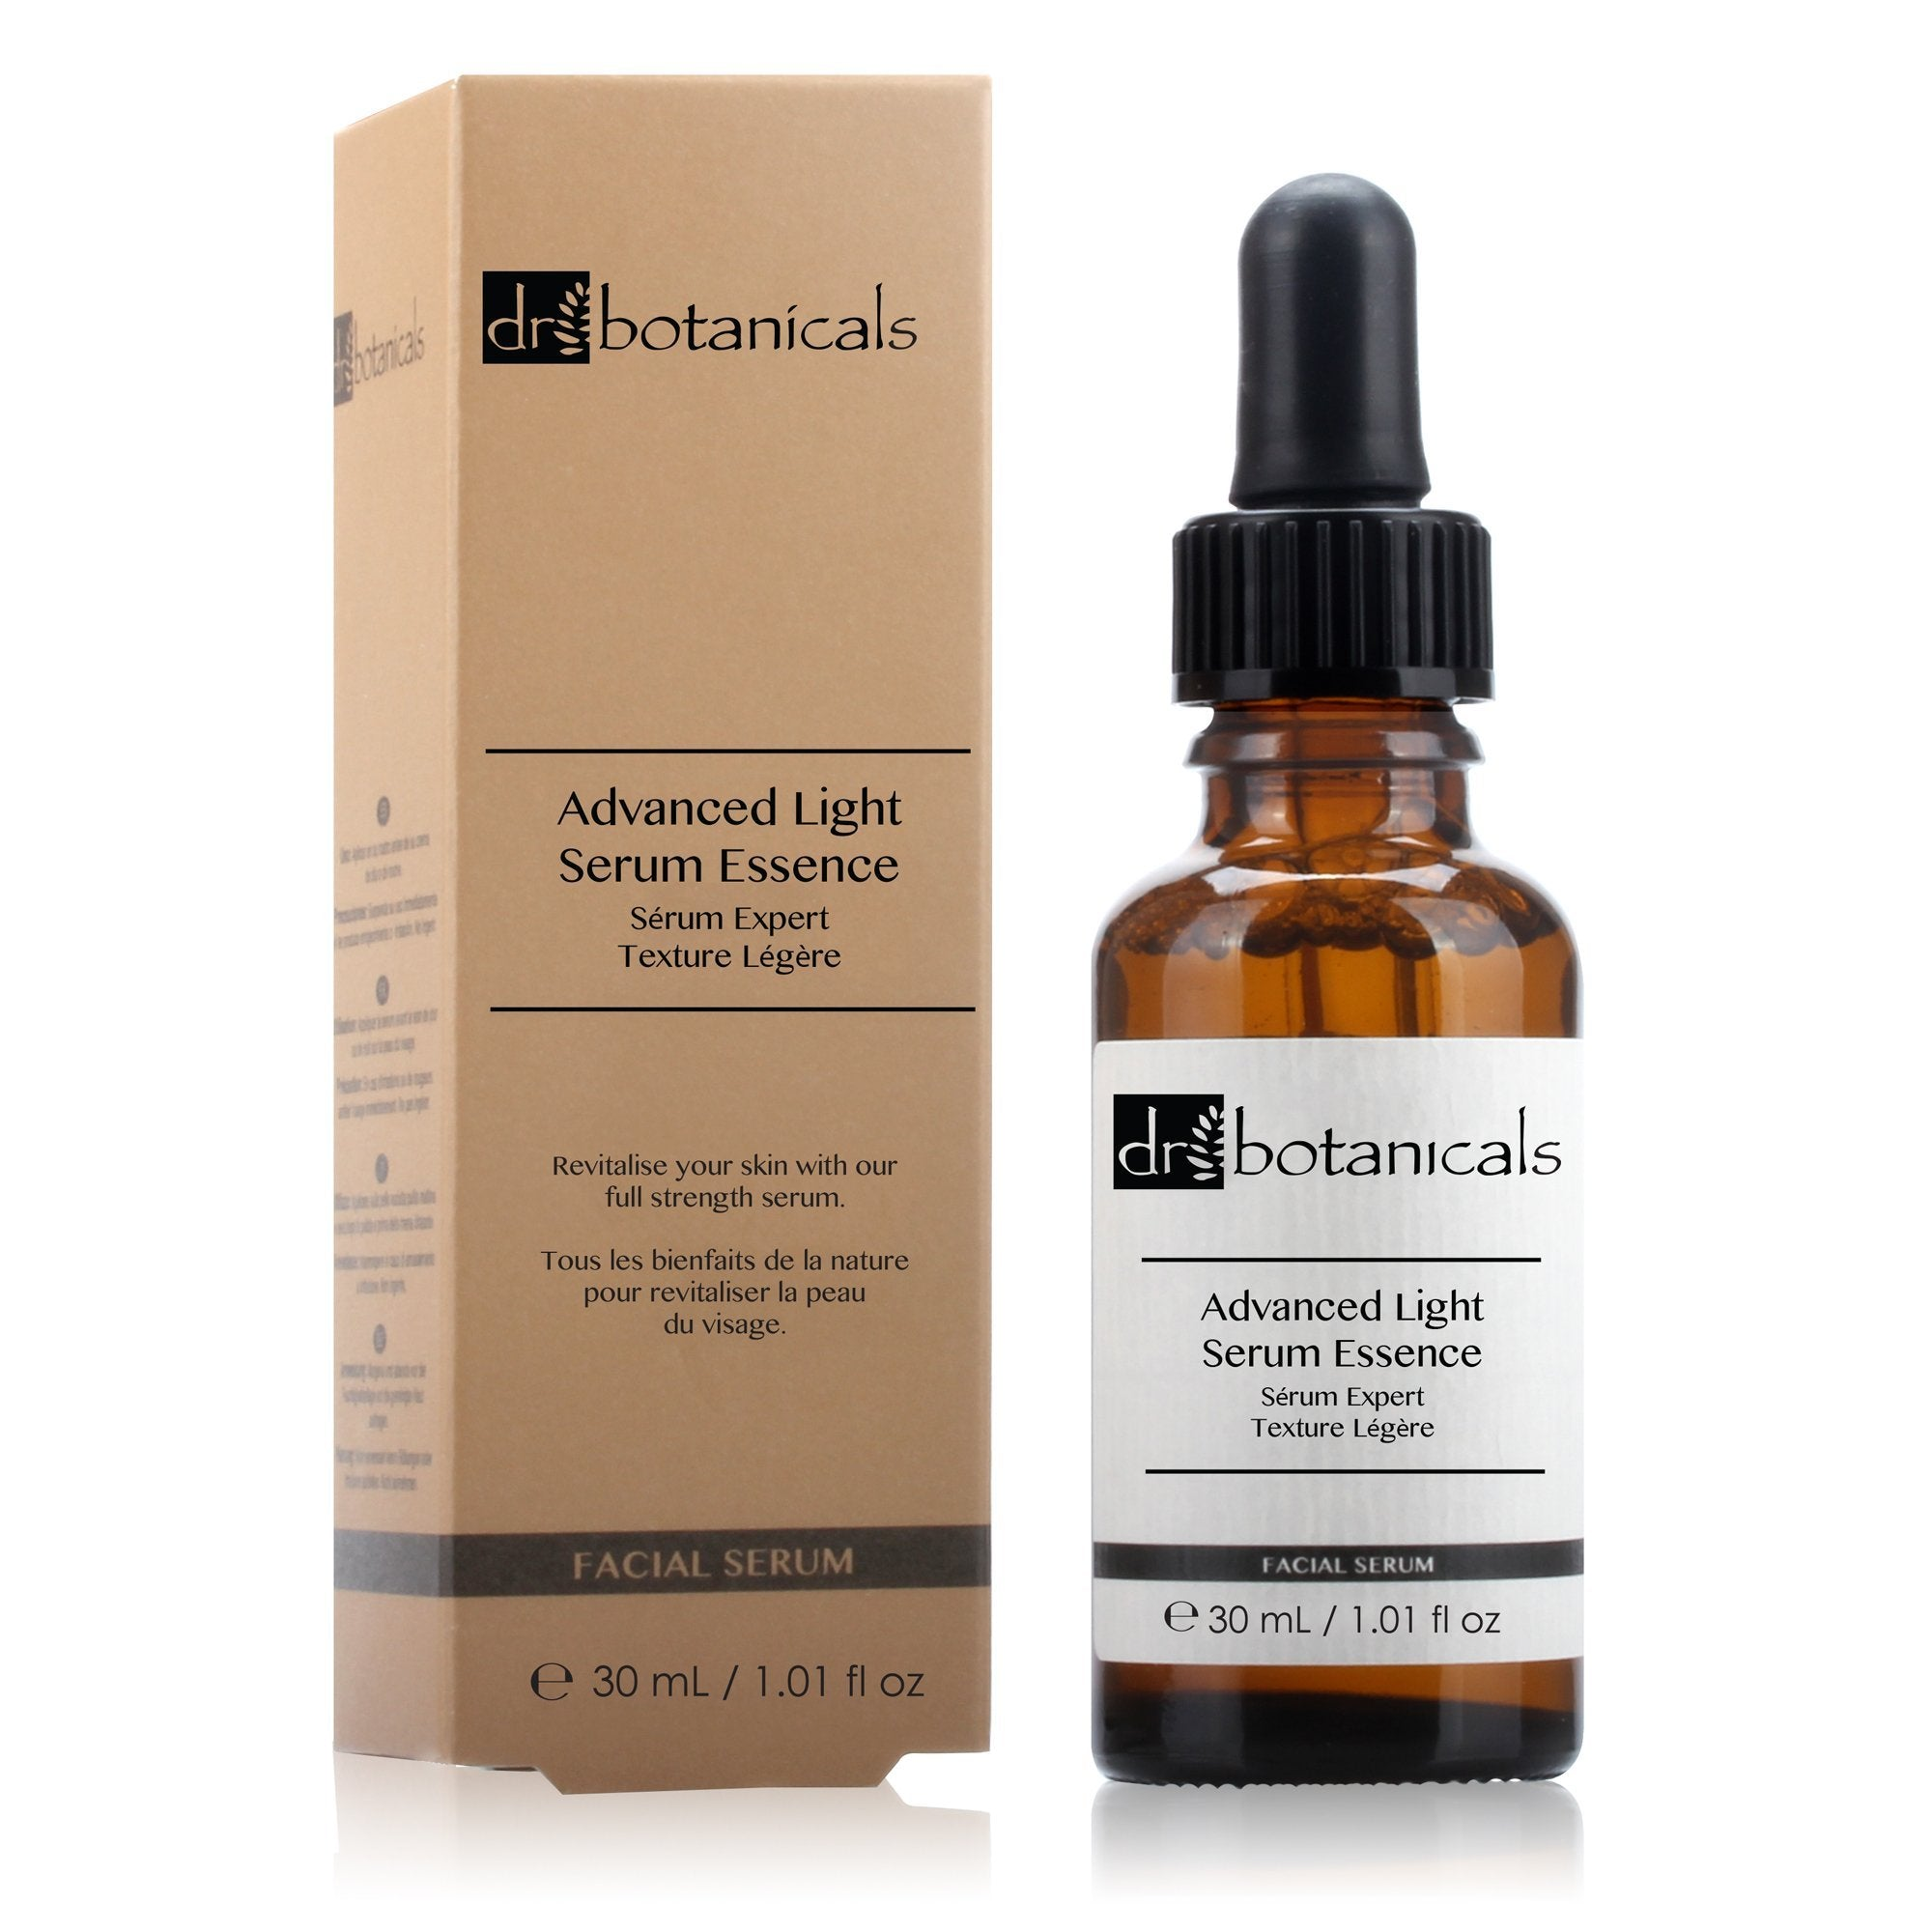 Advanced Light Facial Serum Essence